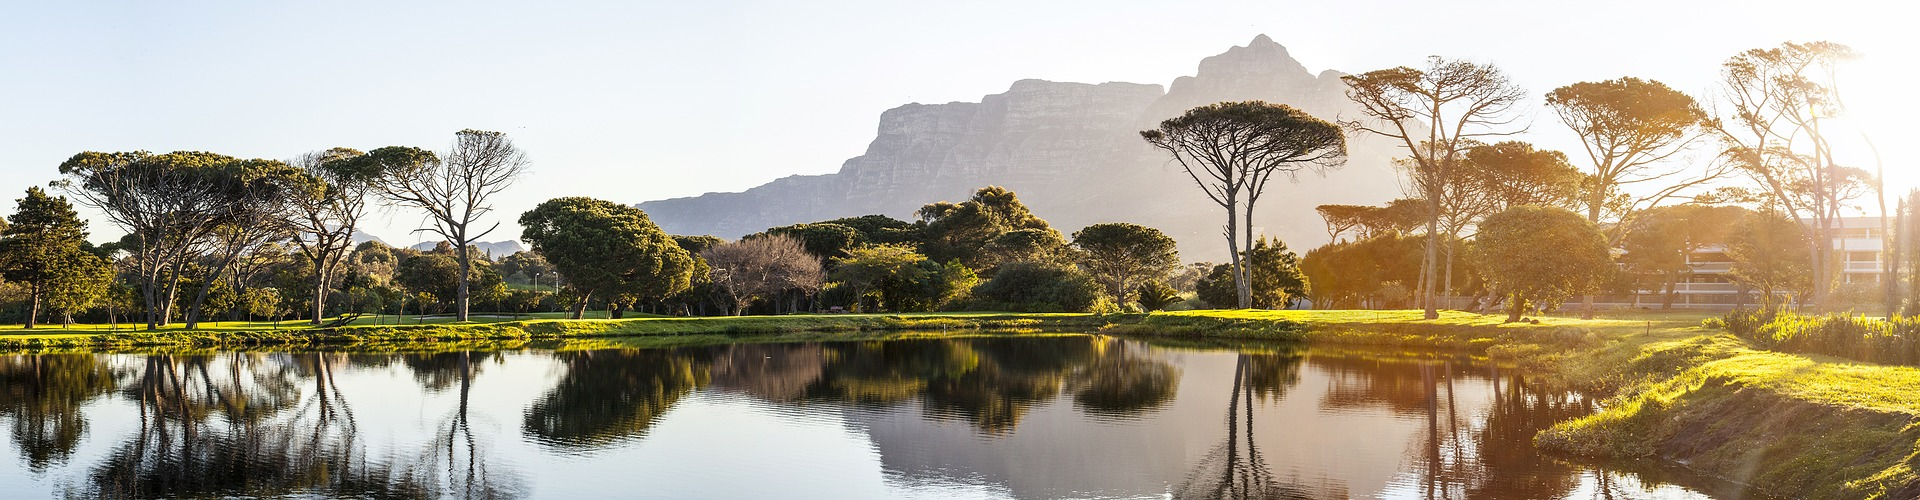 Views of Table Mountain in South Africa